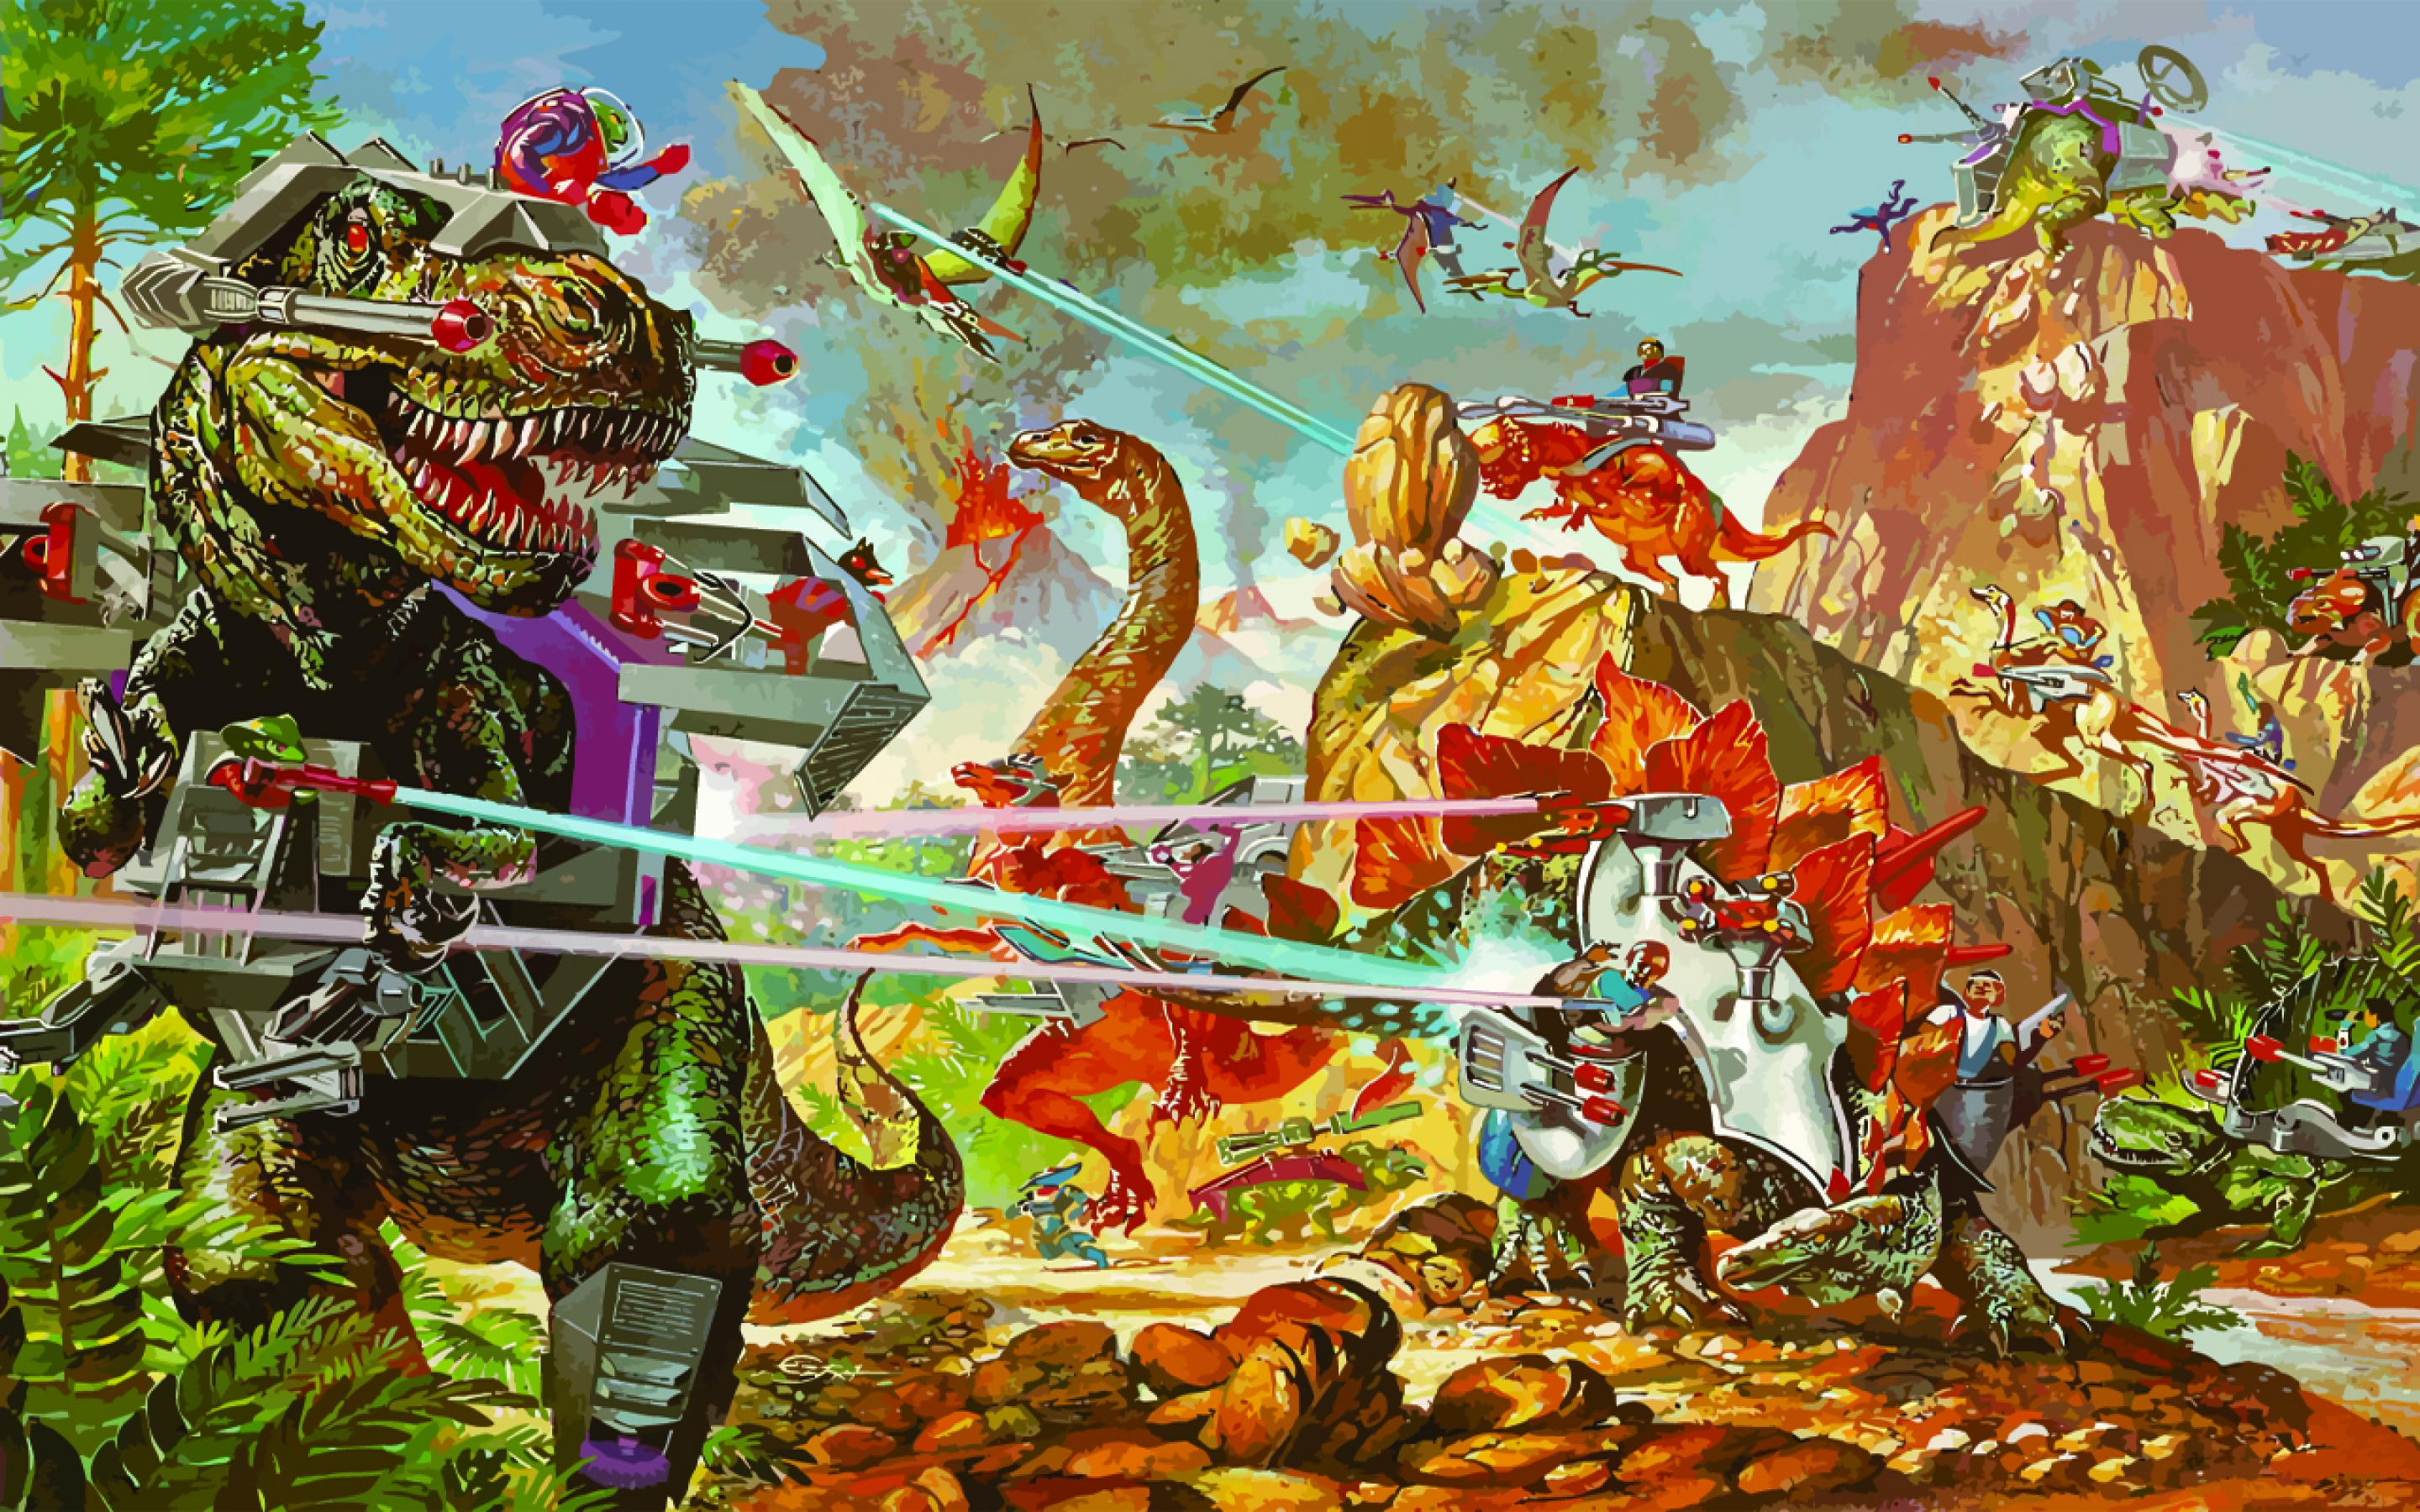 Dino Riders Movie - Dino-Riders Movie Reportedly in the Works at Mattel